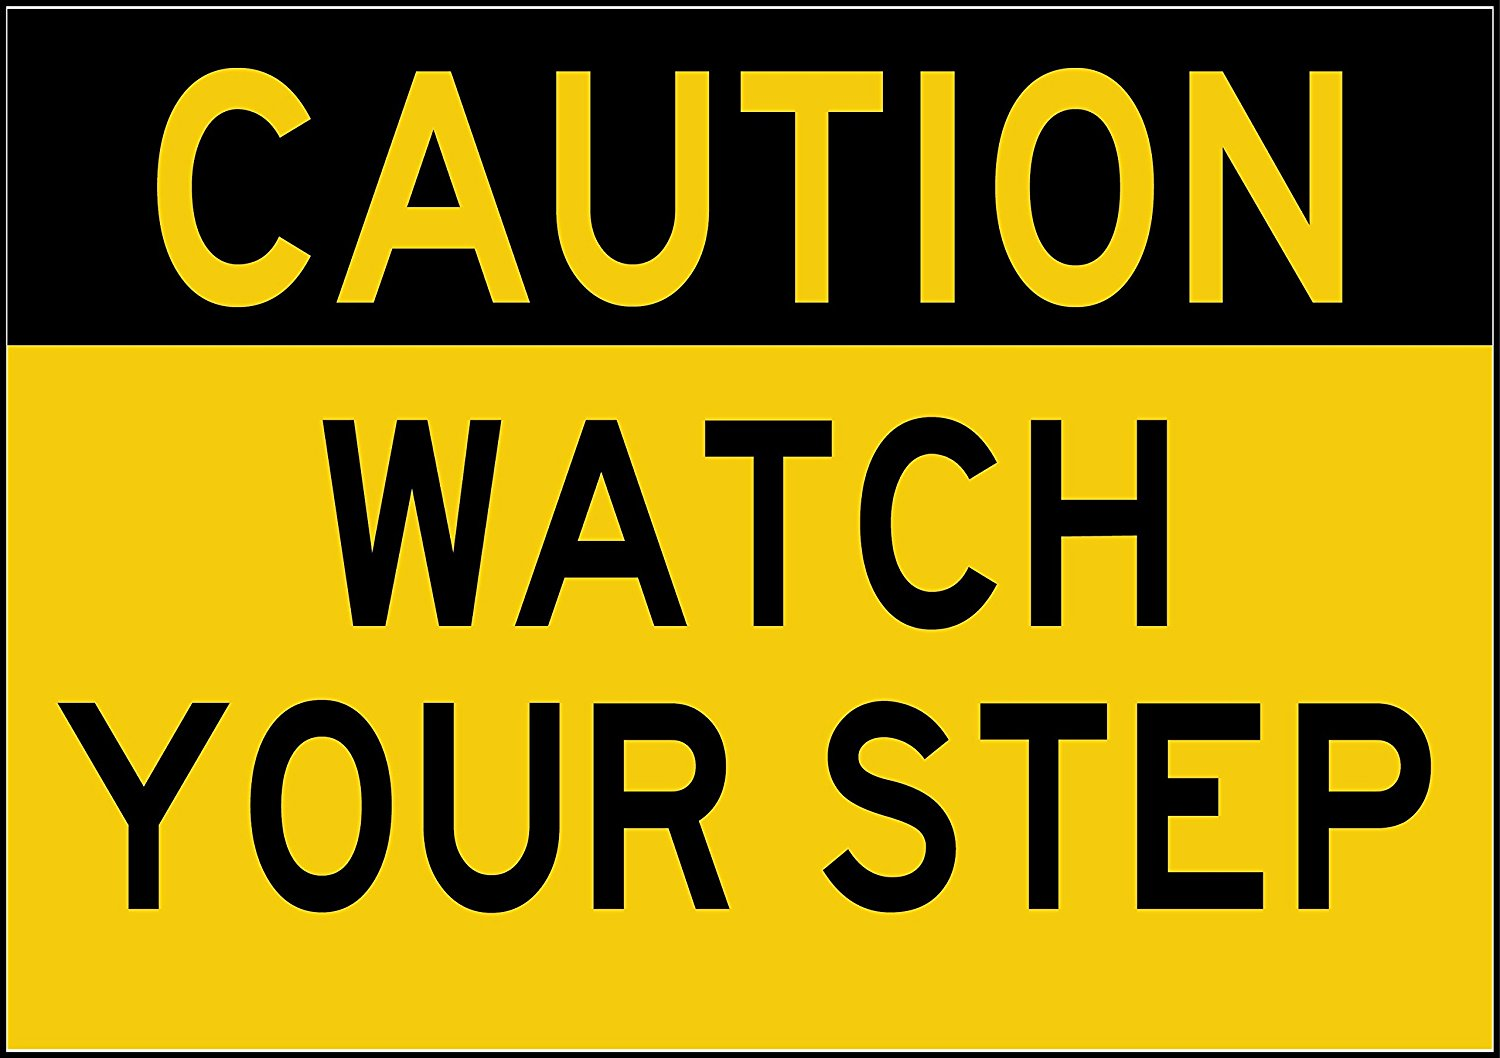 """CAUTION WATCH YOUR STEP Sign. 2 Signs Per Package. 7"""" x 10"""" Made of durable UV resistant vinyl. OHSA and Building Code compliant. Adhesive backing adheres easily to doors, walls, and buildings."""